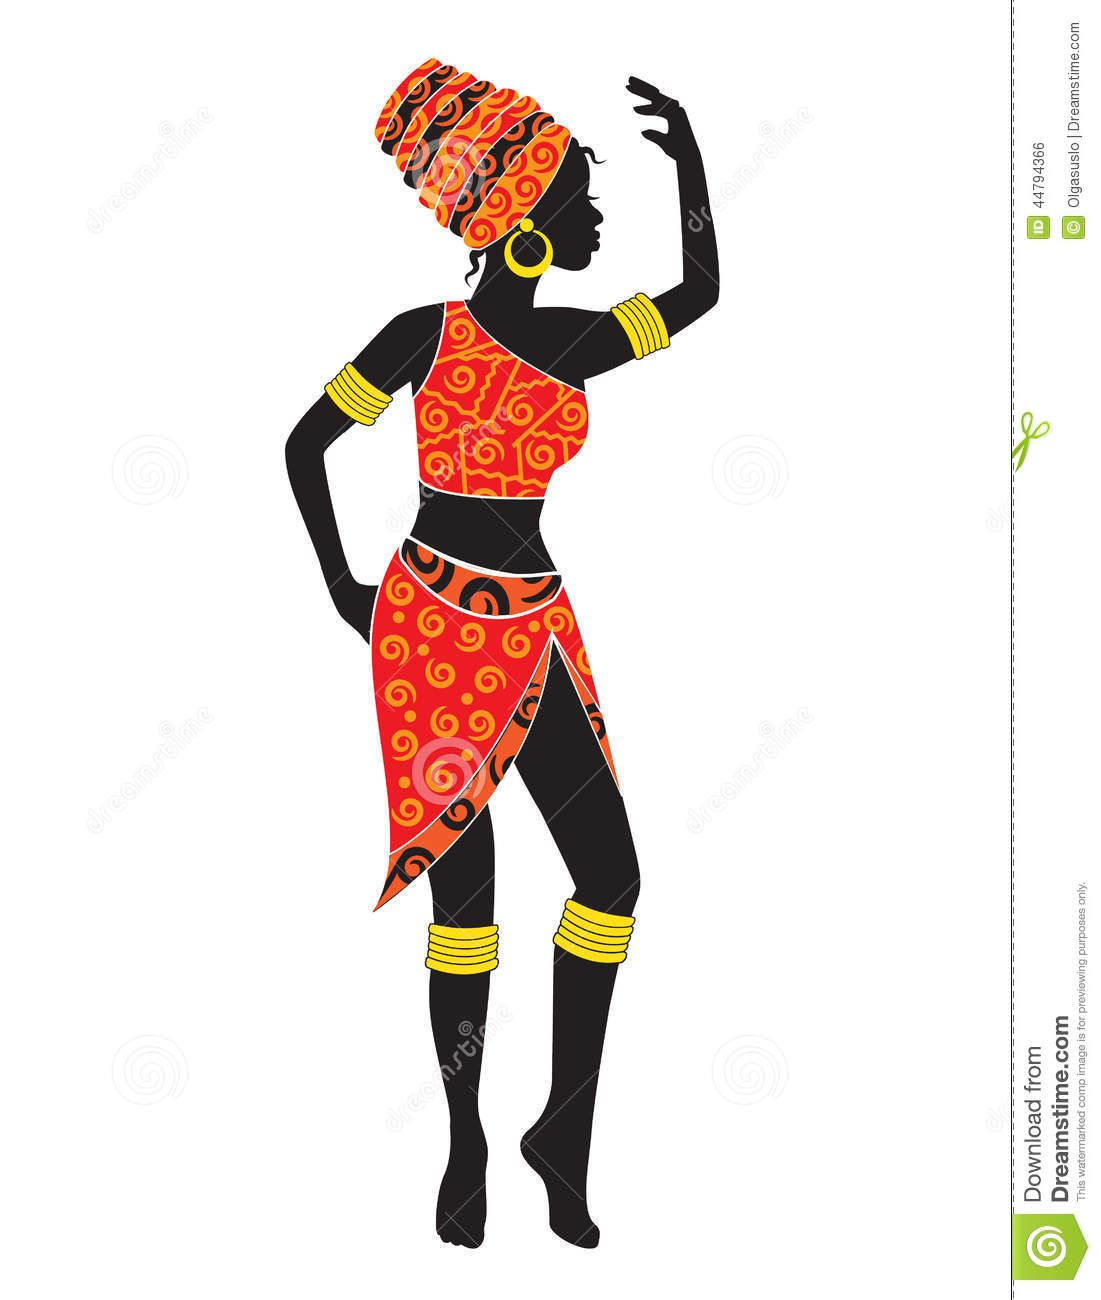 african woman silhouette silhouette of dancing african woman in a rh pinterest com Fitness Clip Art New Year Horn Clip Art